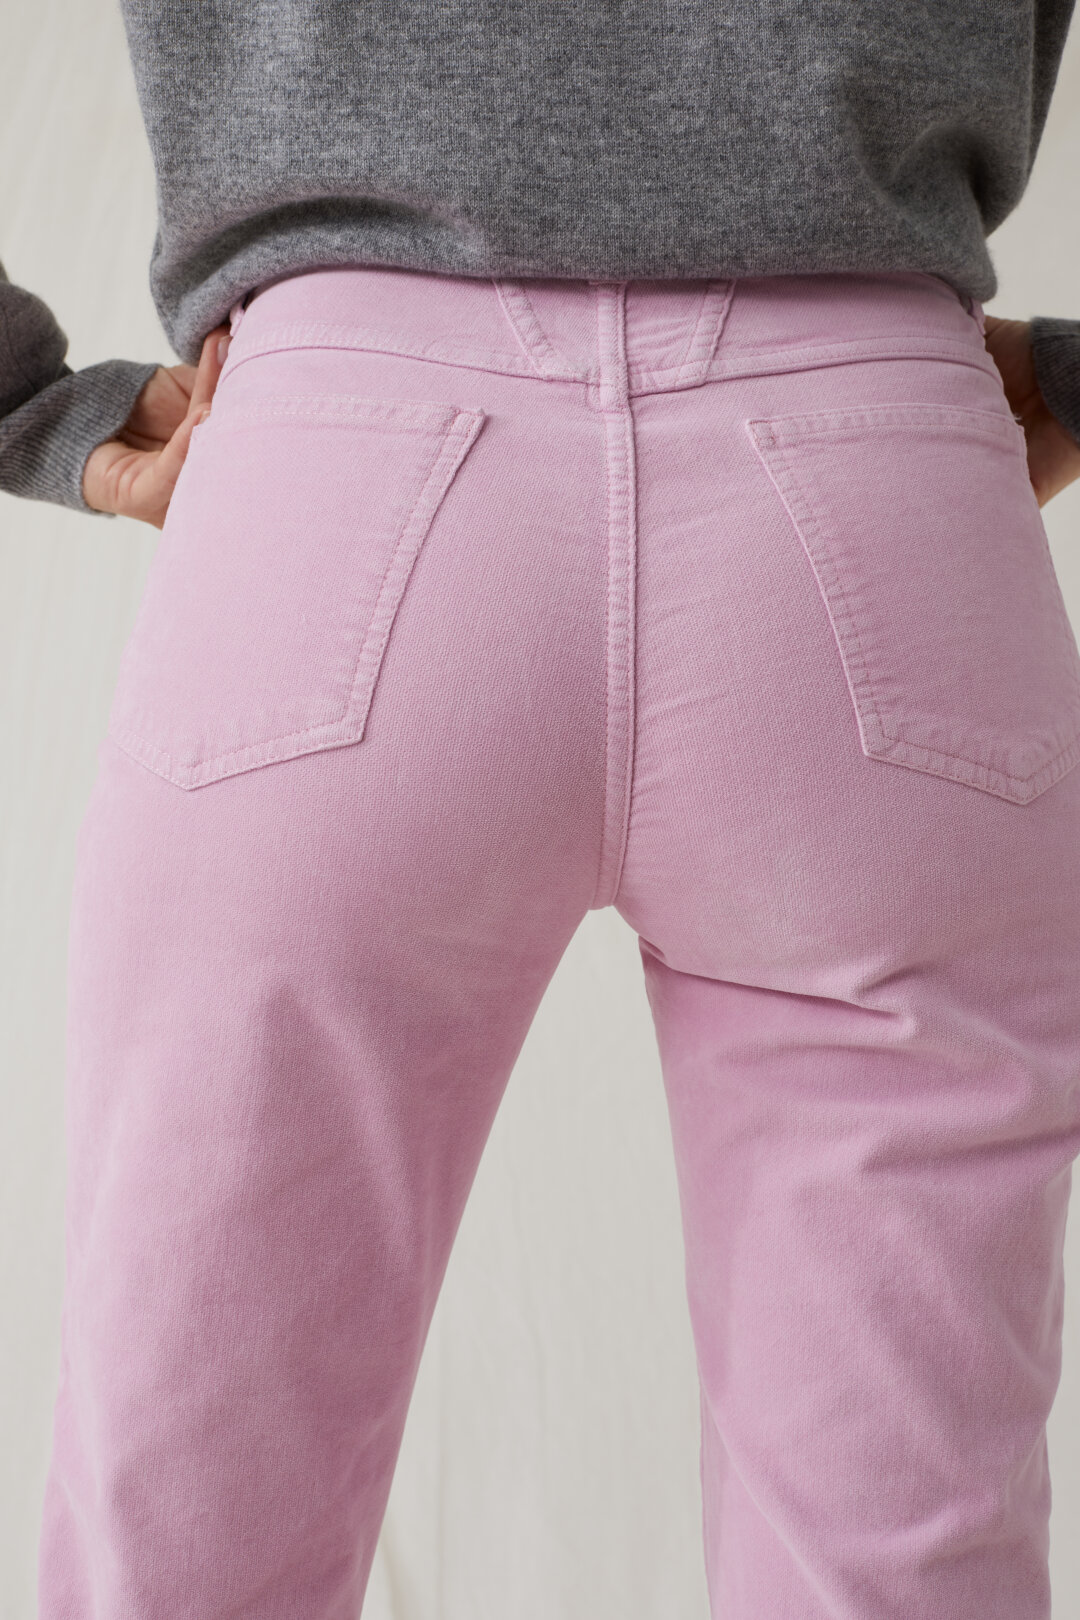 Pedal Pusher Velvet Pants